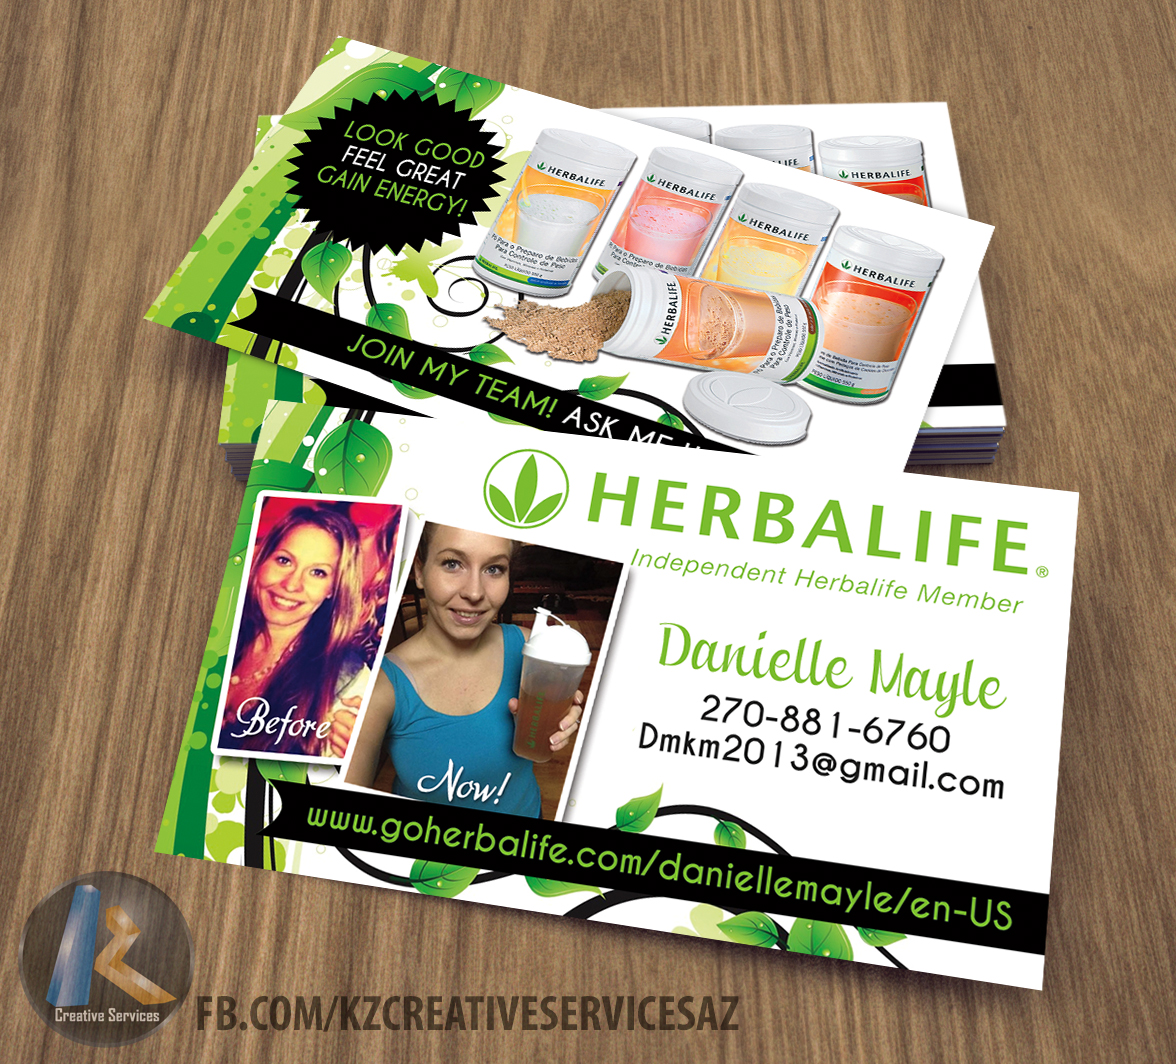 Herbalife business cards style 2 kz creative services online herbalife business cards style 2 colourmoves